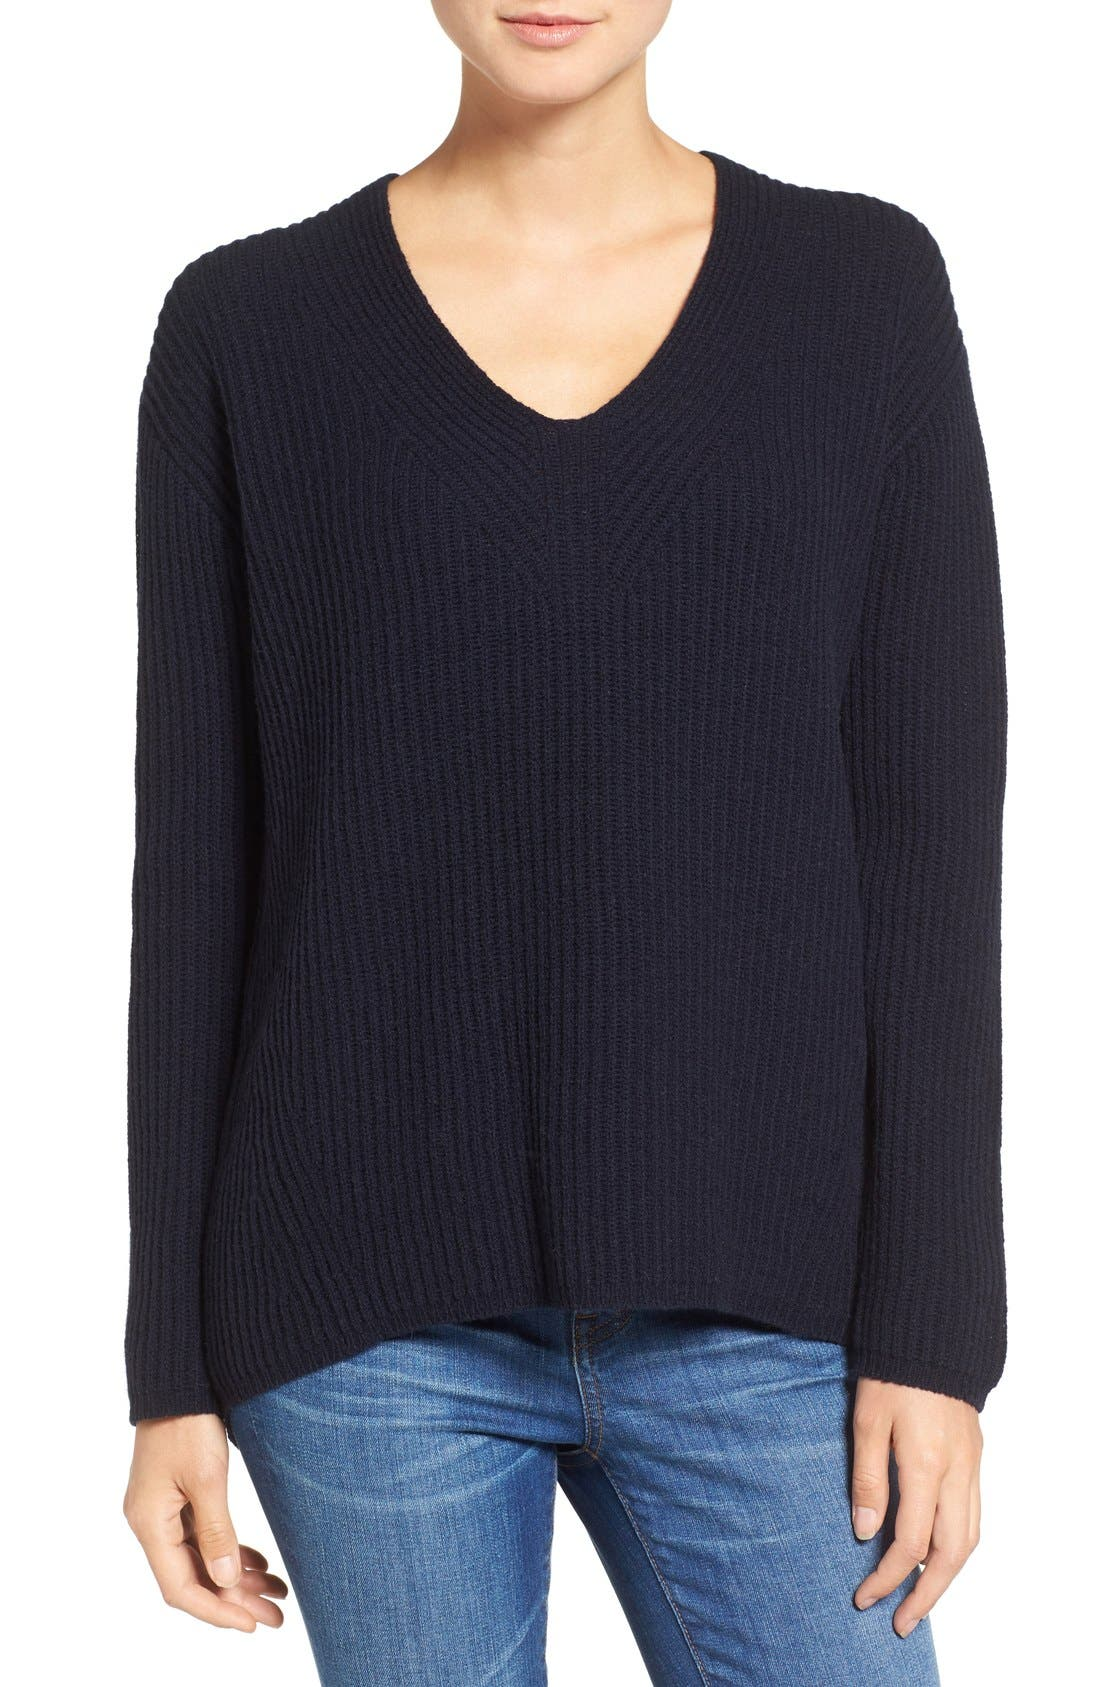 Woodside Pullover Sweater,                             Main thumbnail 7, color,